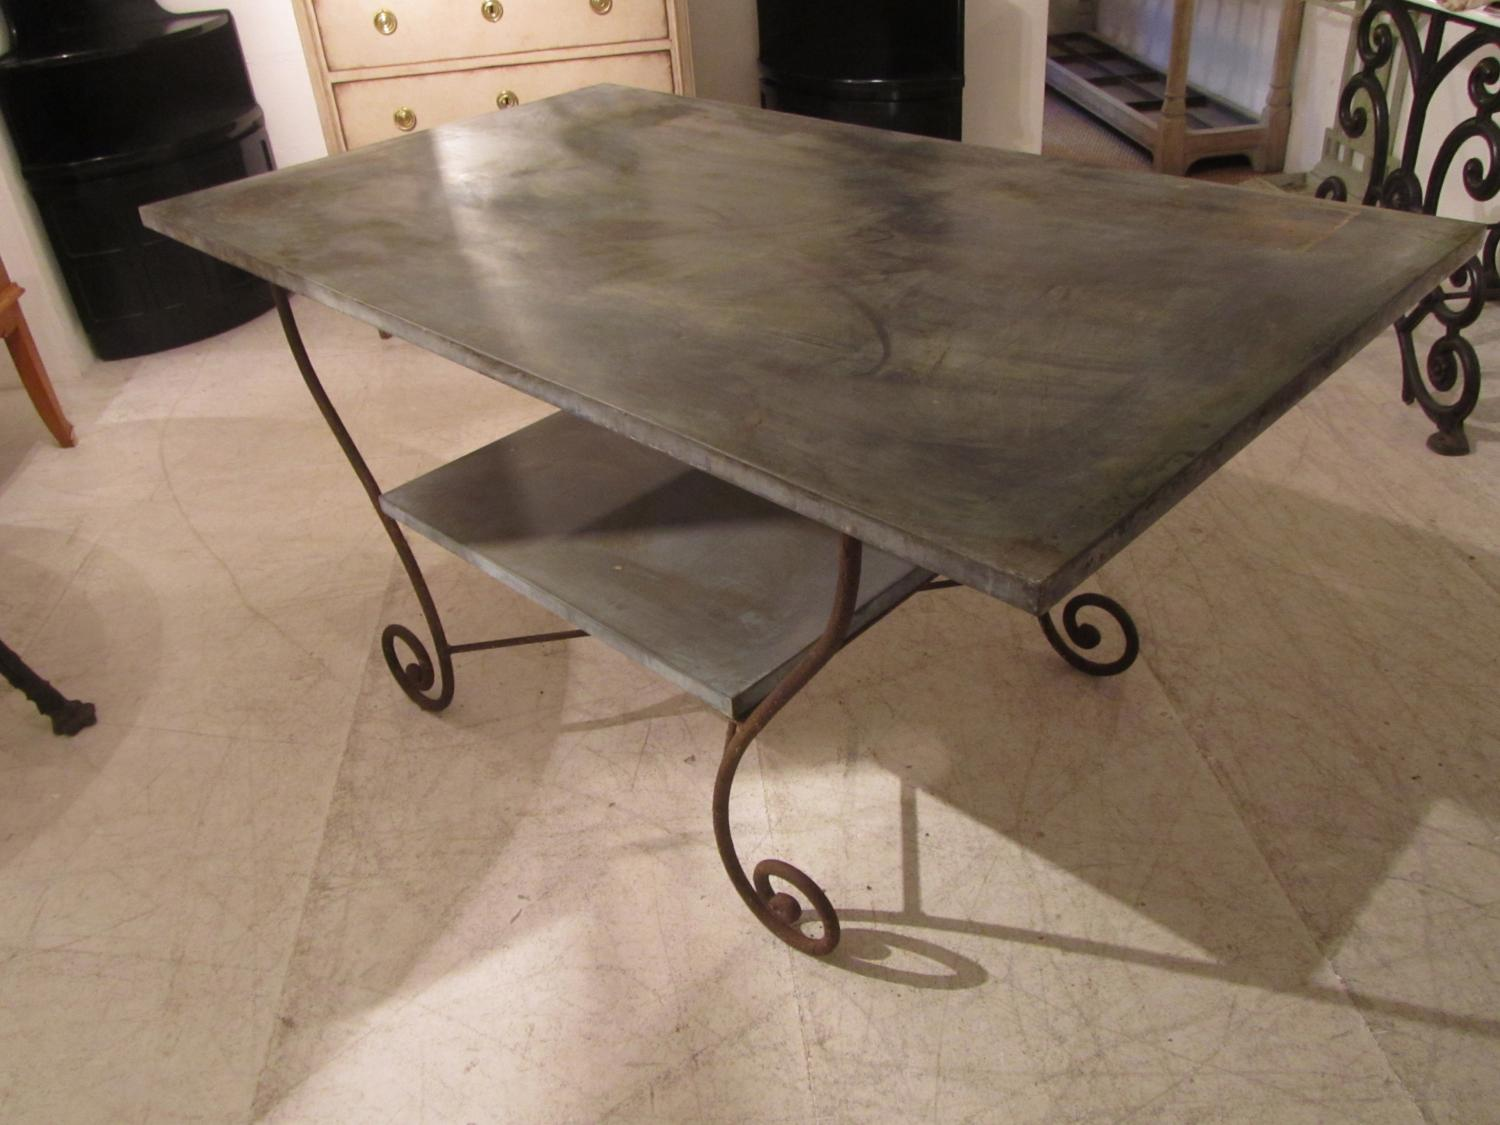 A Zinc and iron potting table